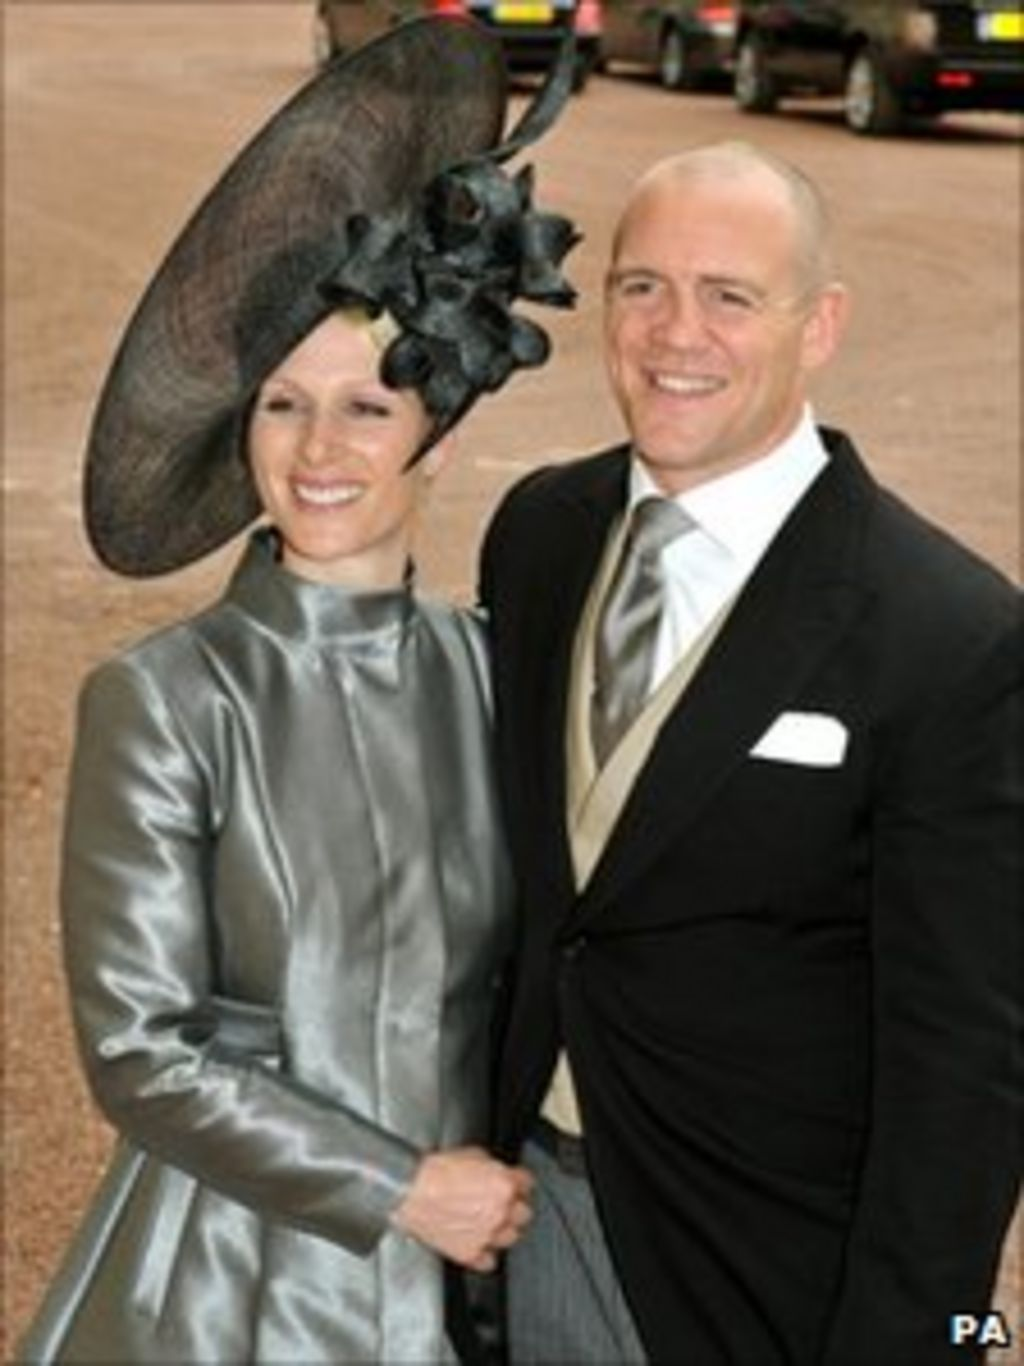 Zara Phillips And Mike Tindall The Other Royal Wedding Bbc News